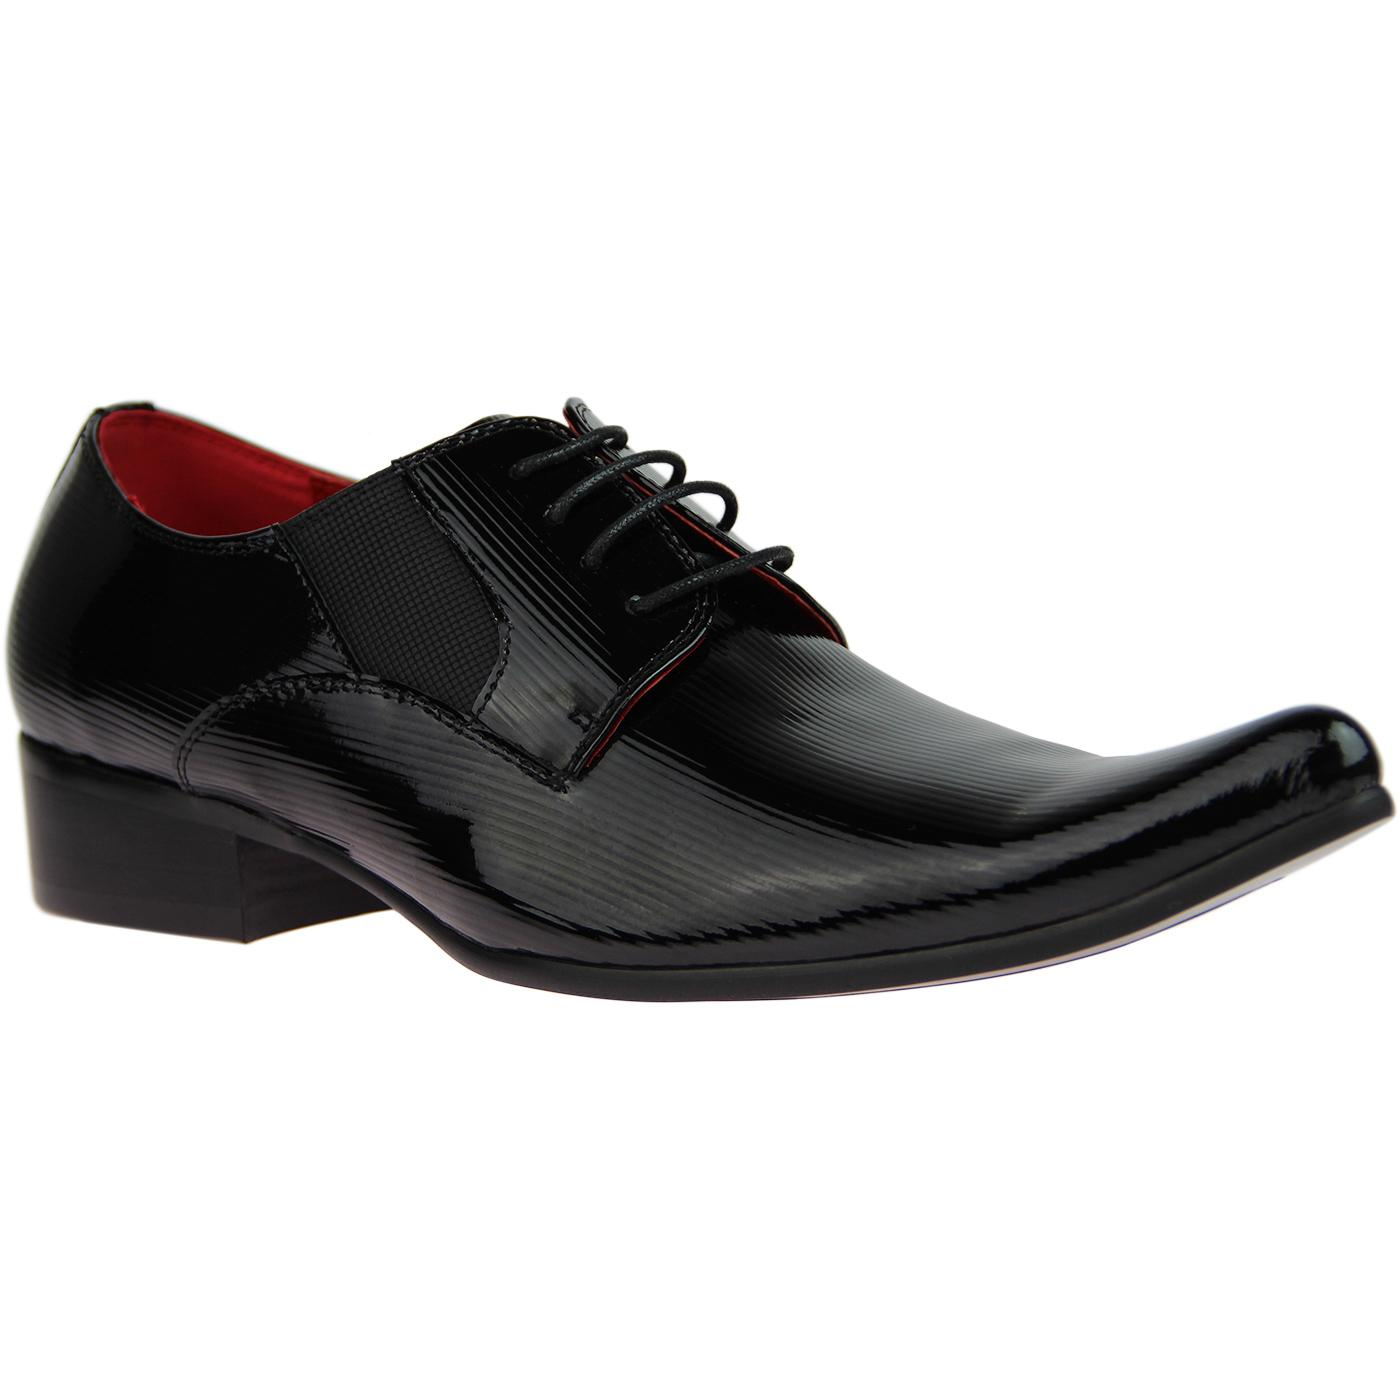 Callahan MADCAP ENGLAND Pinstripe Winklepickers